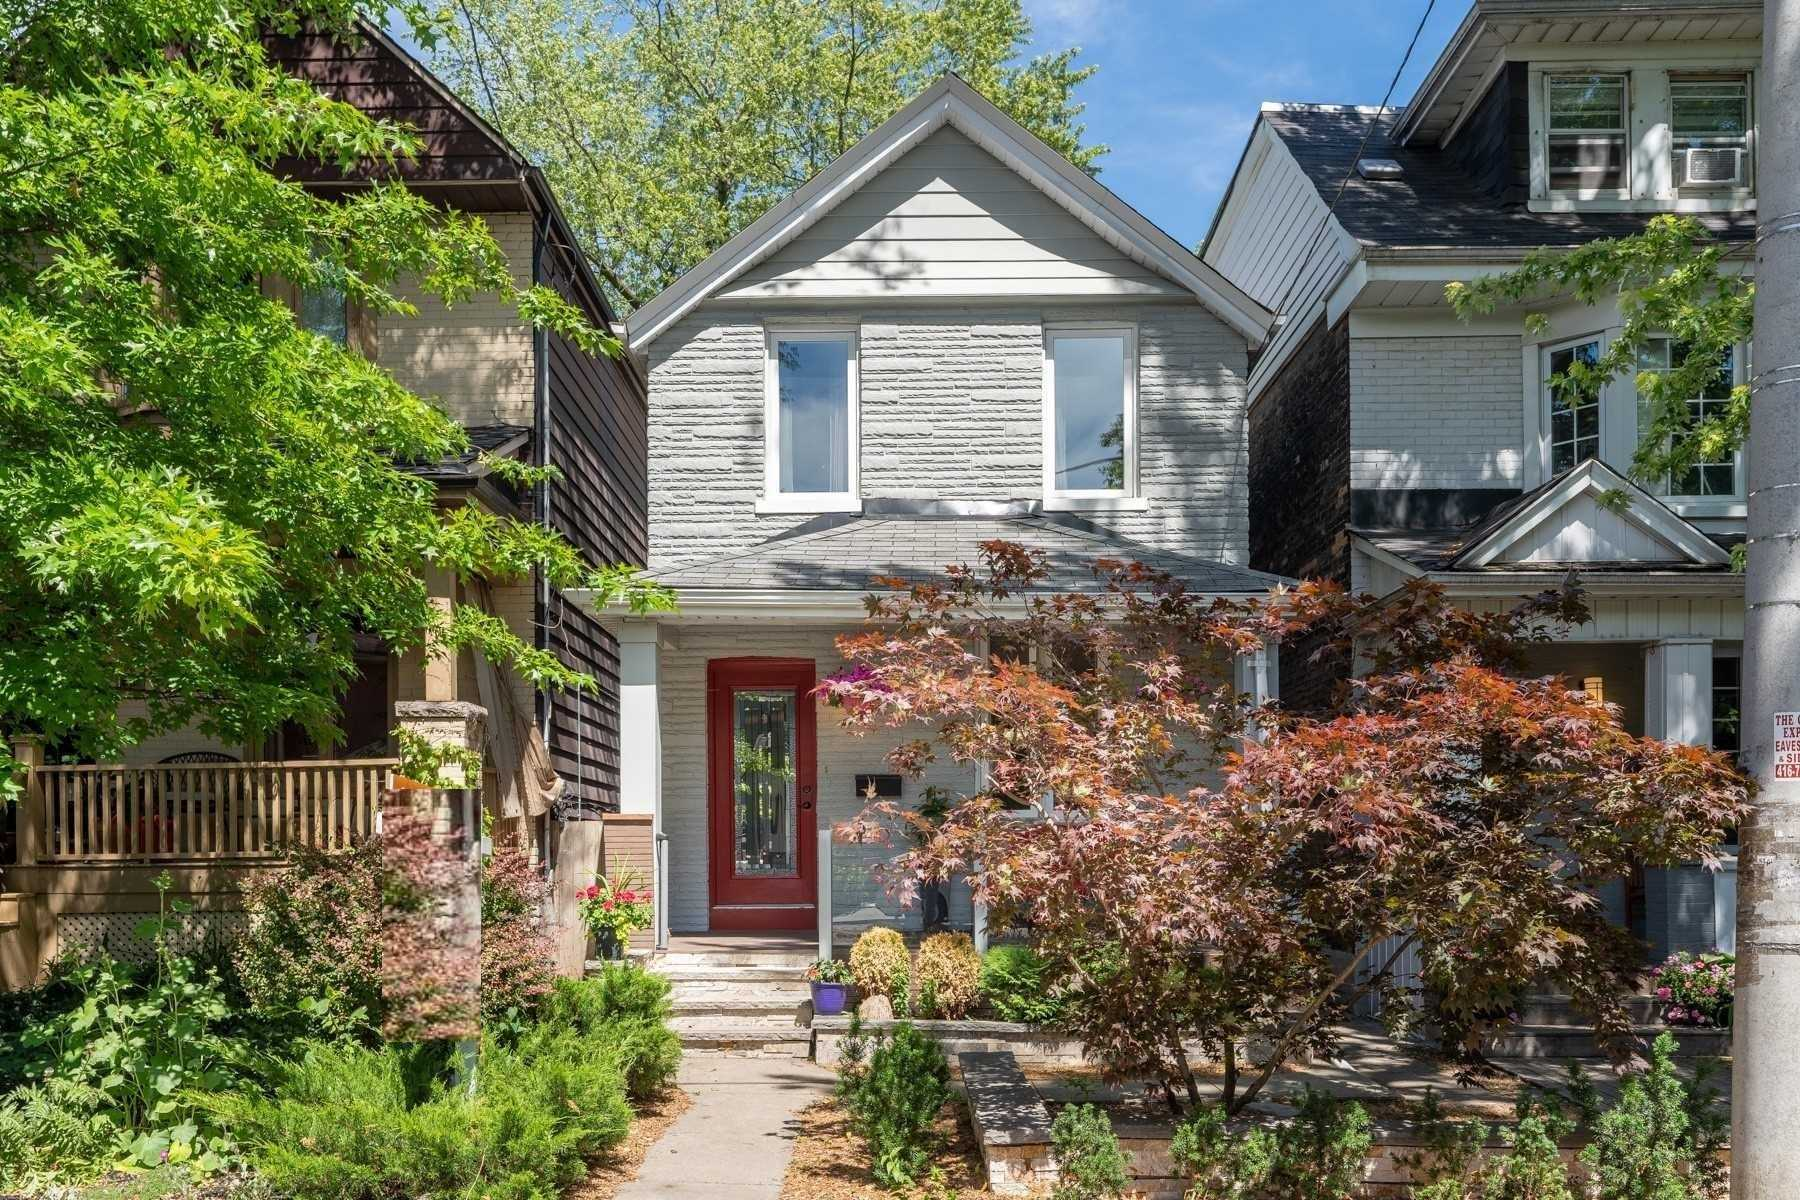 Detached house For Lease In Toronto - 121 Galt Ave, Toronto, Ontario, Canada M4M2Z4 , 1 Bedroom Bedrooms, ,1 BathroomBathrooms,Detached,For Lease,Bsmt,Galt